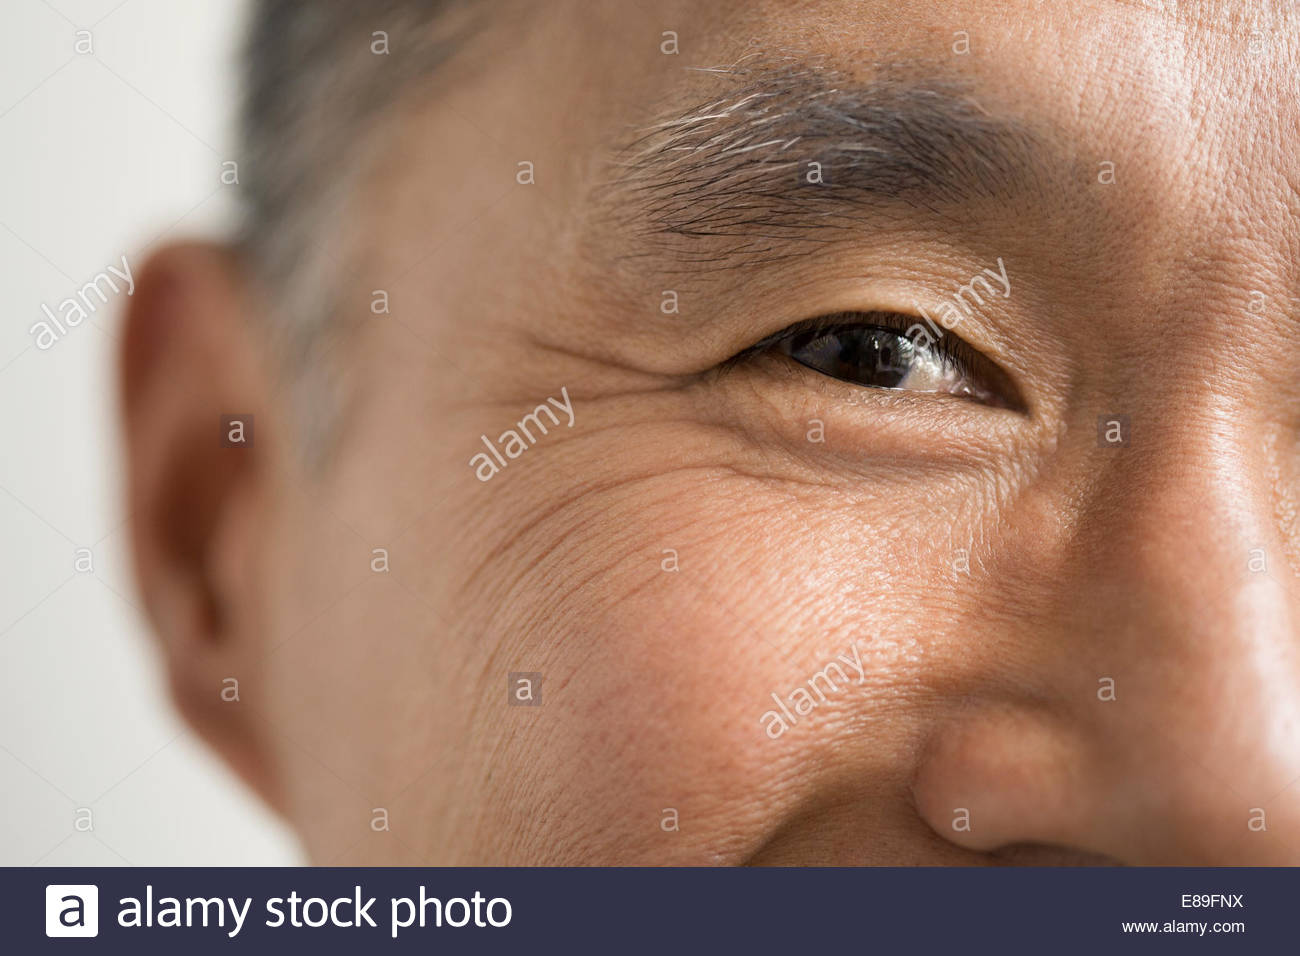 Close up of eyes of smiling man - Stock Image